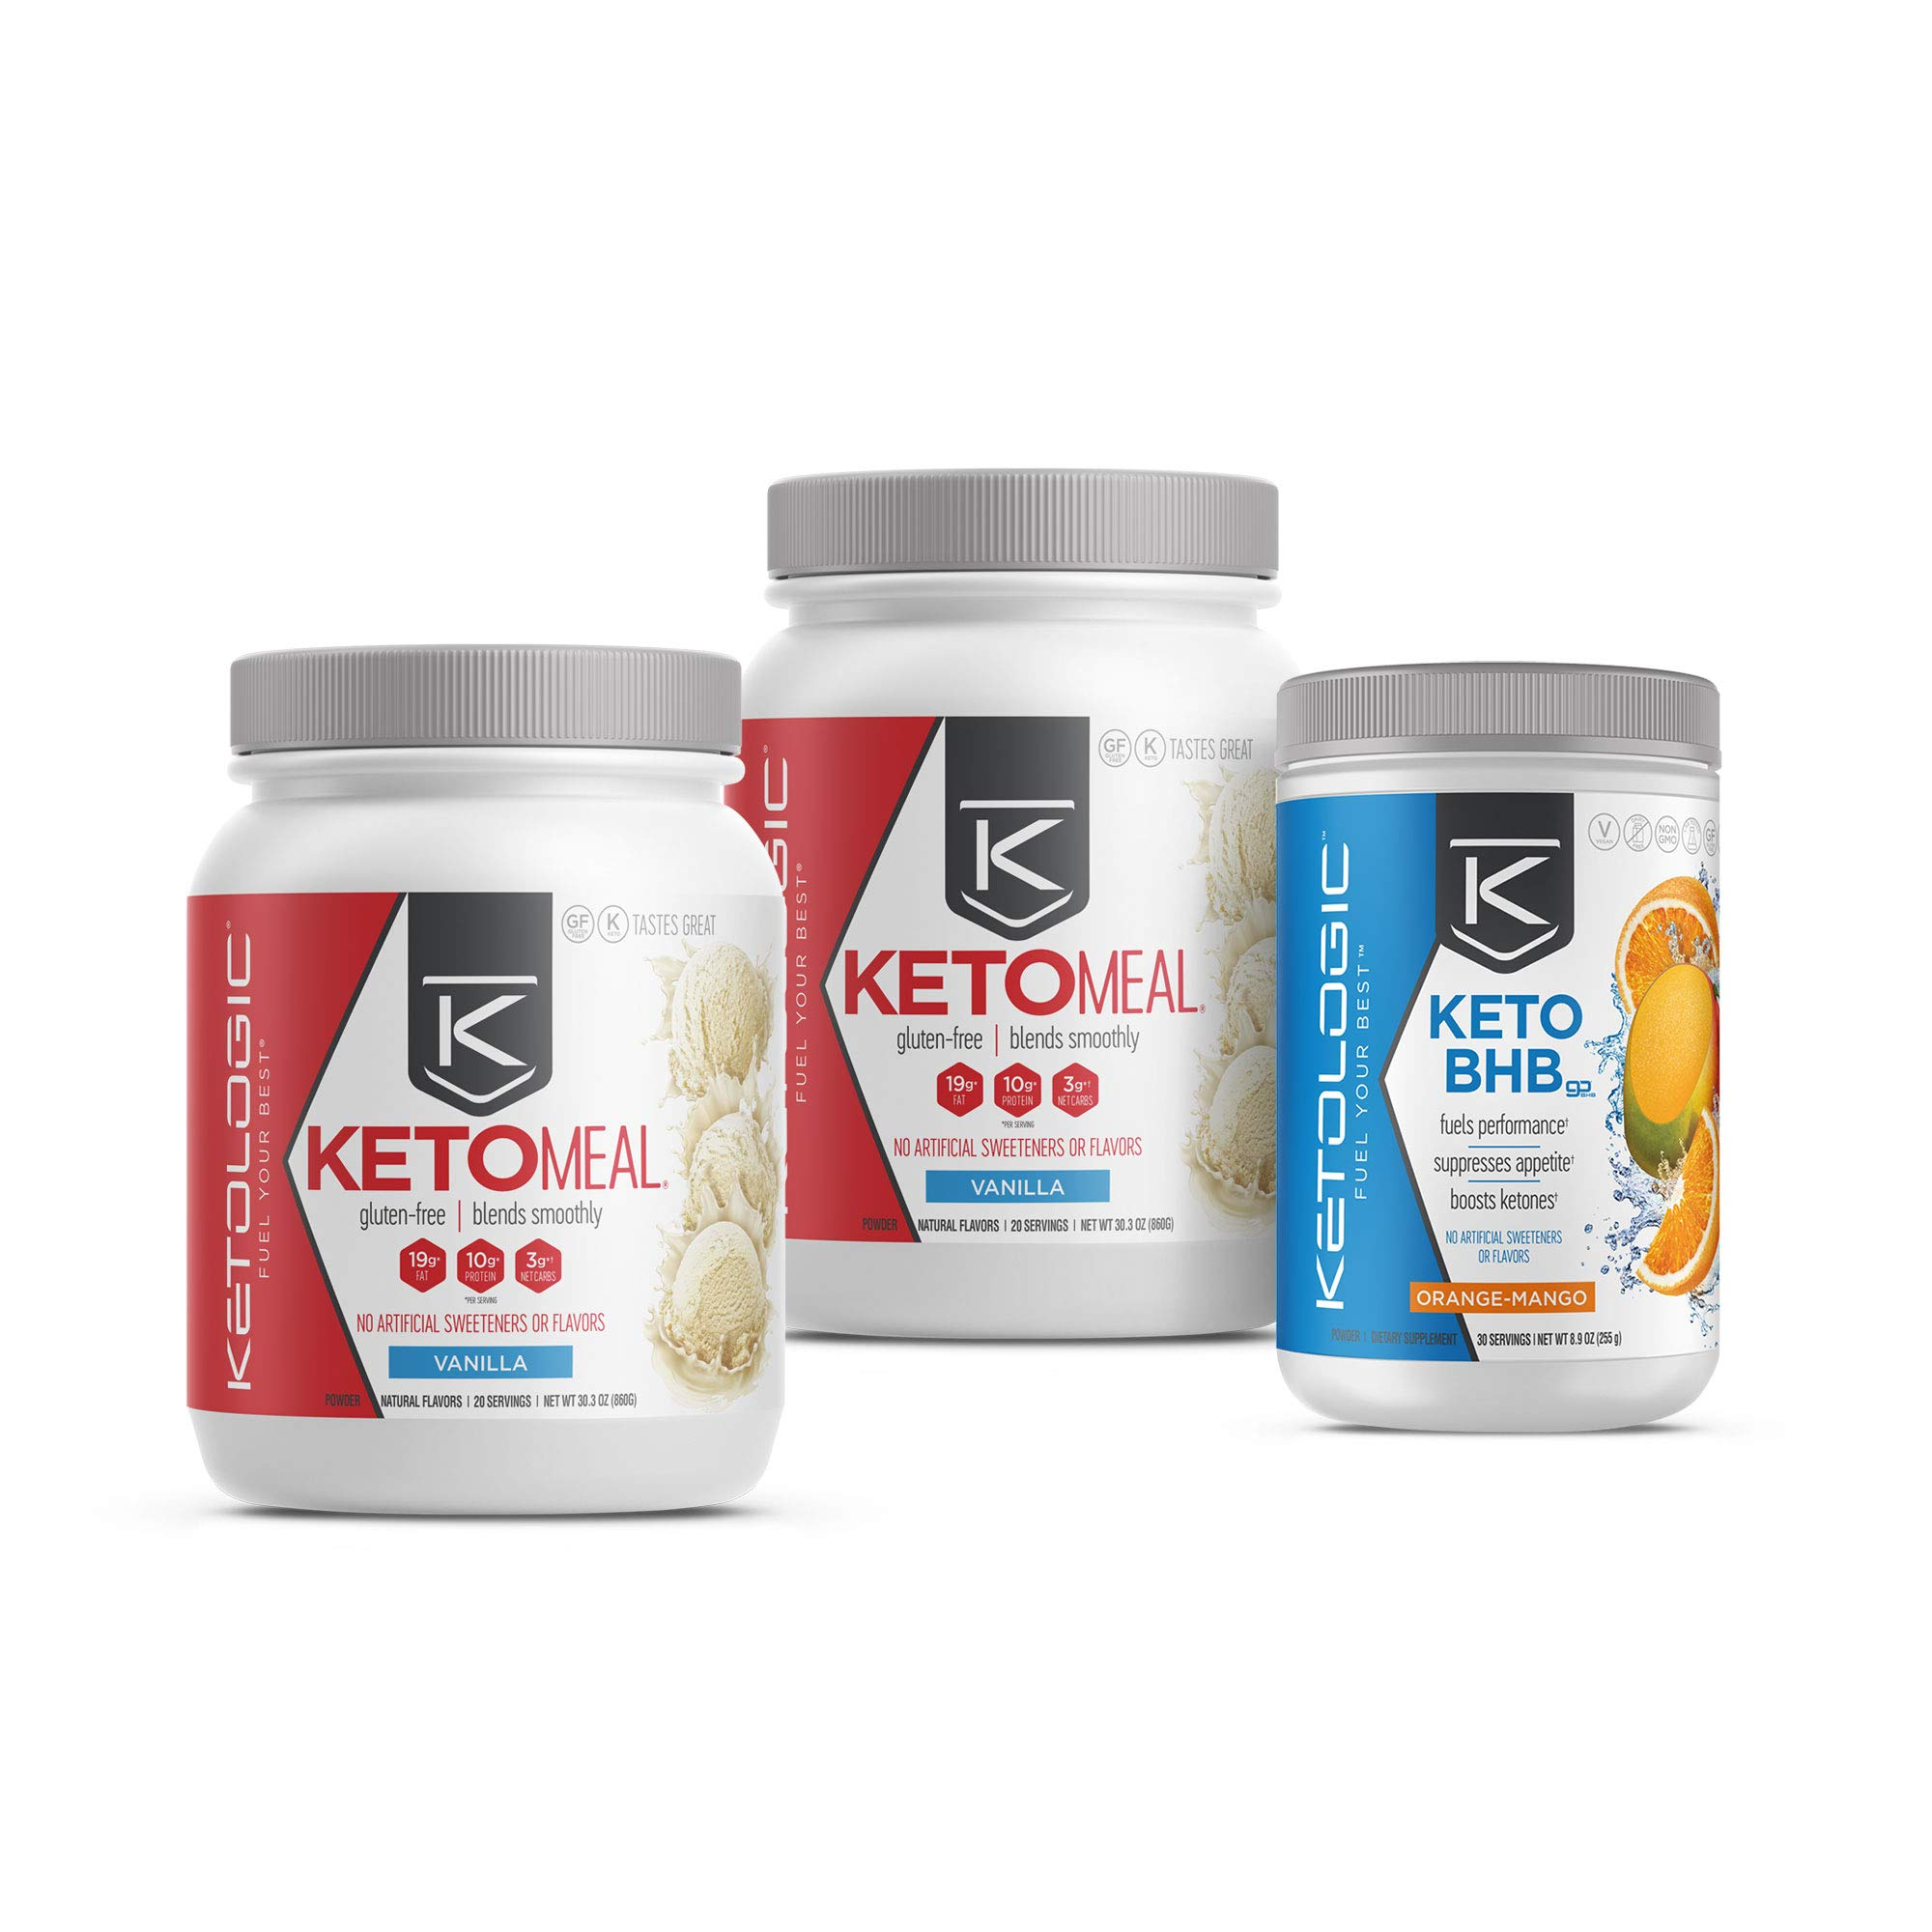 KetoLogic Keto 30 Challenge Bundle, 30-Day Supply | Includes 2 Meal Replacement Shakes with MCT [Vanilla] & 1 BHB Salt [Orange-Mango] | Suppresses Appetite, Promotes Weight Loss & Increases Energy by Ketologic